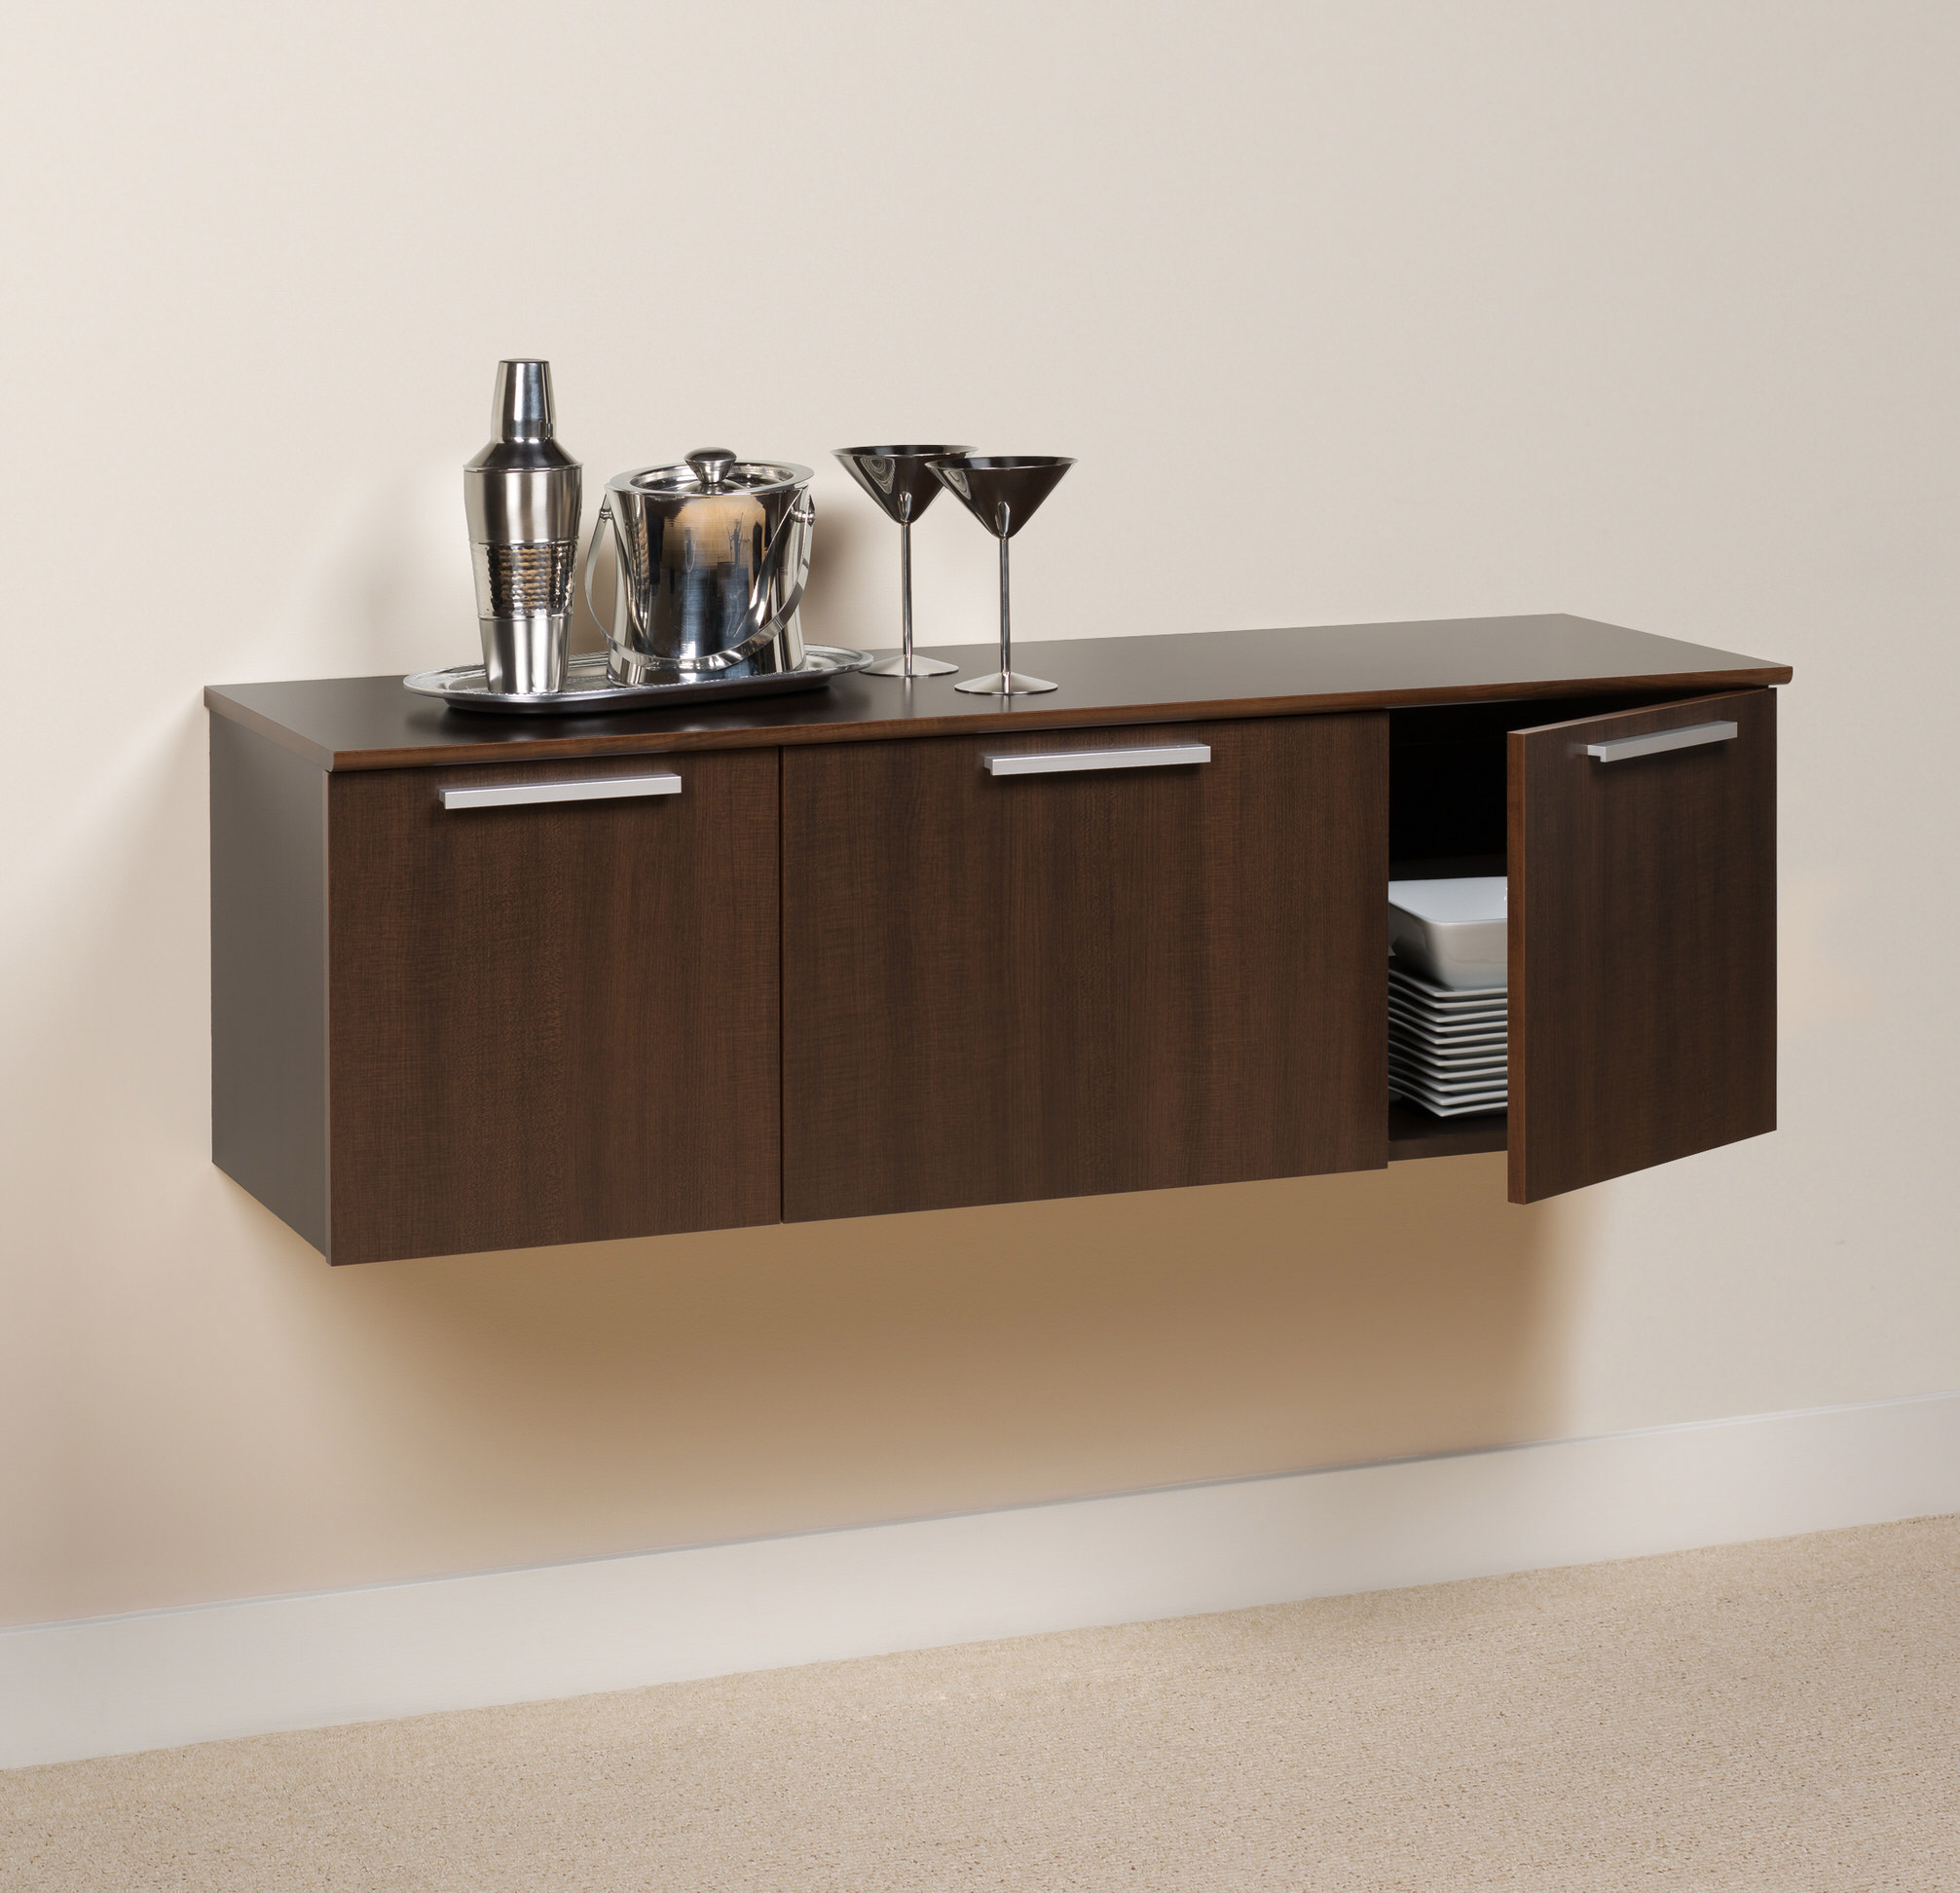 Prepac espresso series 9 wall mounted headboard system with 2 - Coal Harbor Wall Mounted Buffet By Prepac Espresso